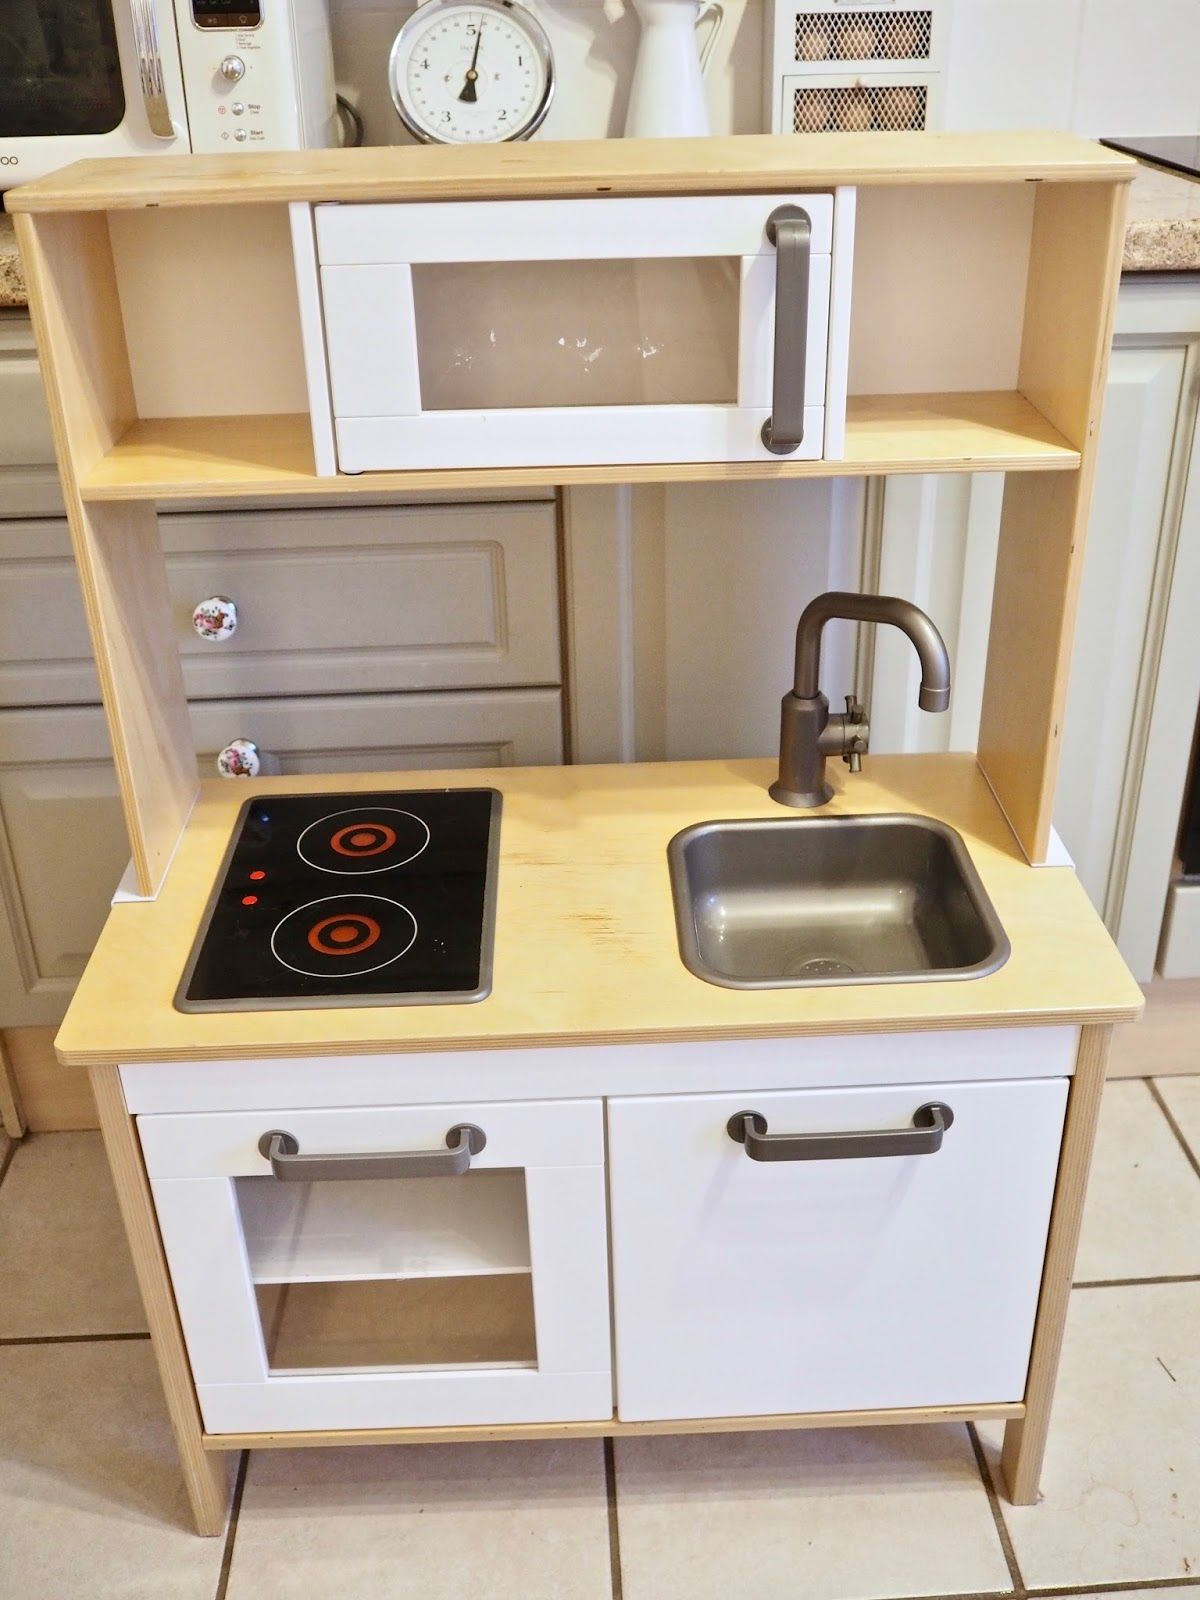 Ikea Duktig play kitchen makeover (With images) Play